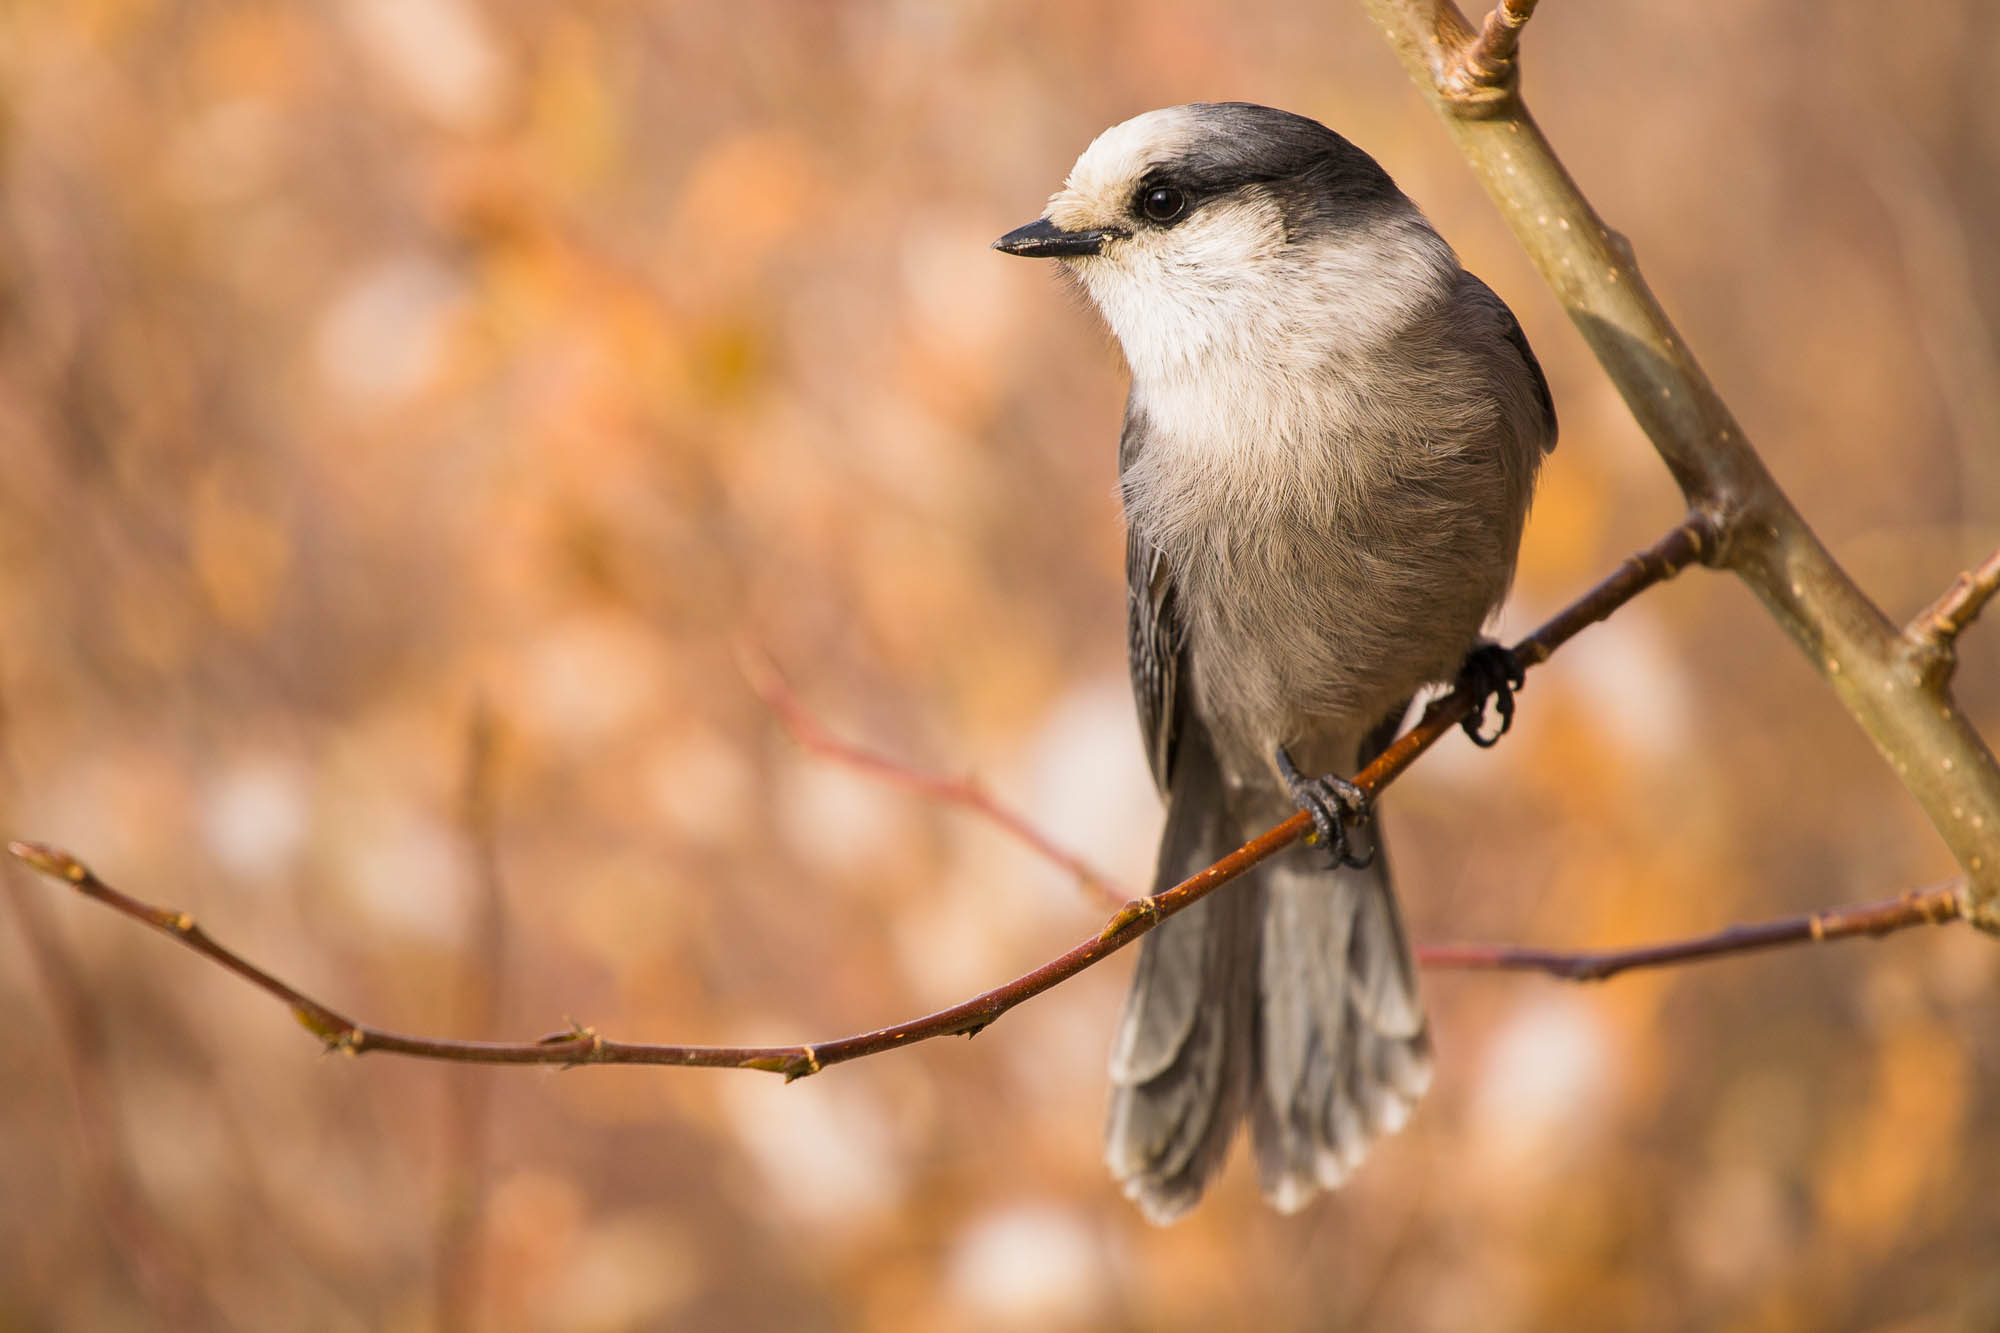 Gray jay adult perched on a branch,  in autumn, Yukon, Canada